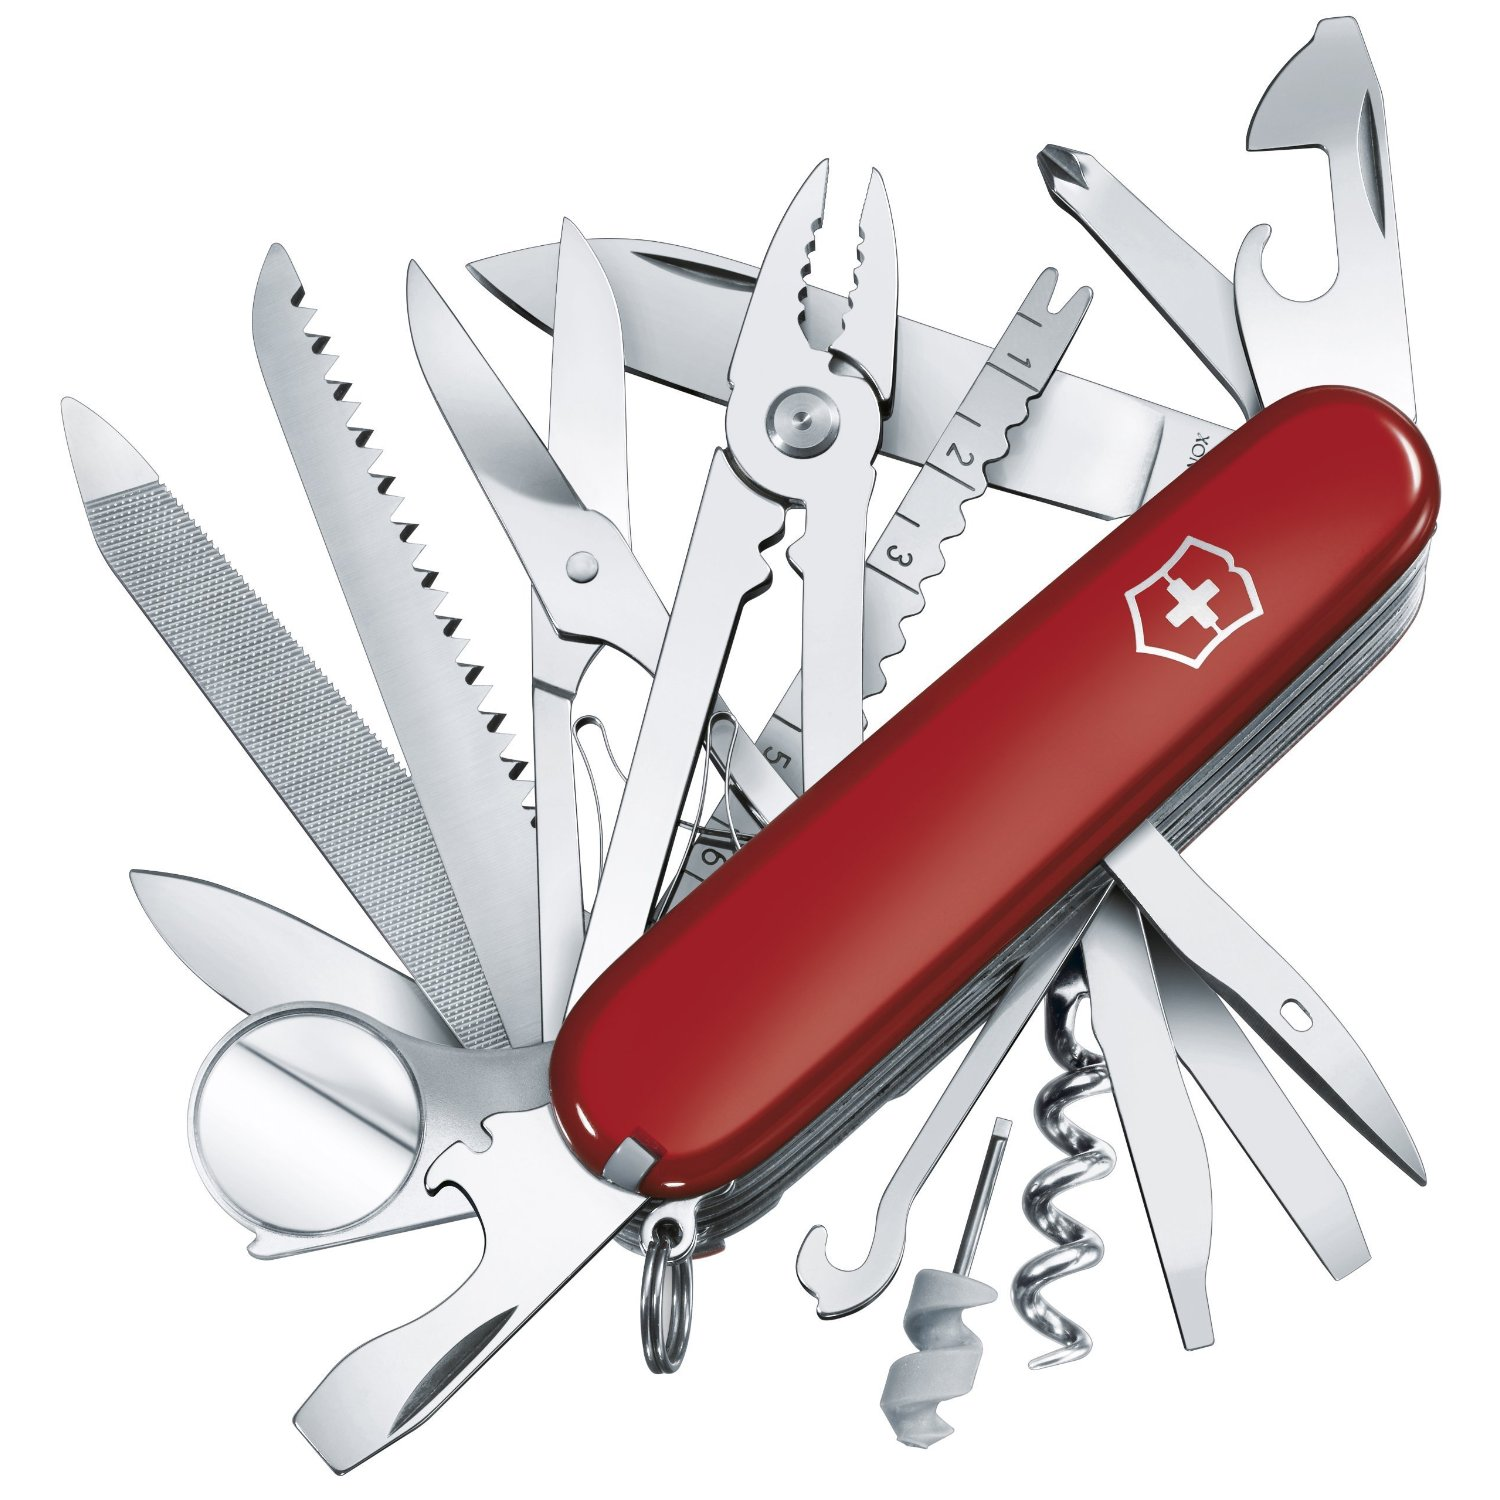 Swiss Army Champ Multitool Knife